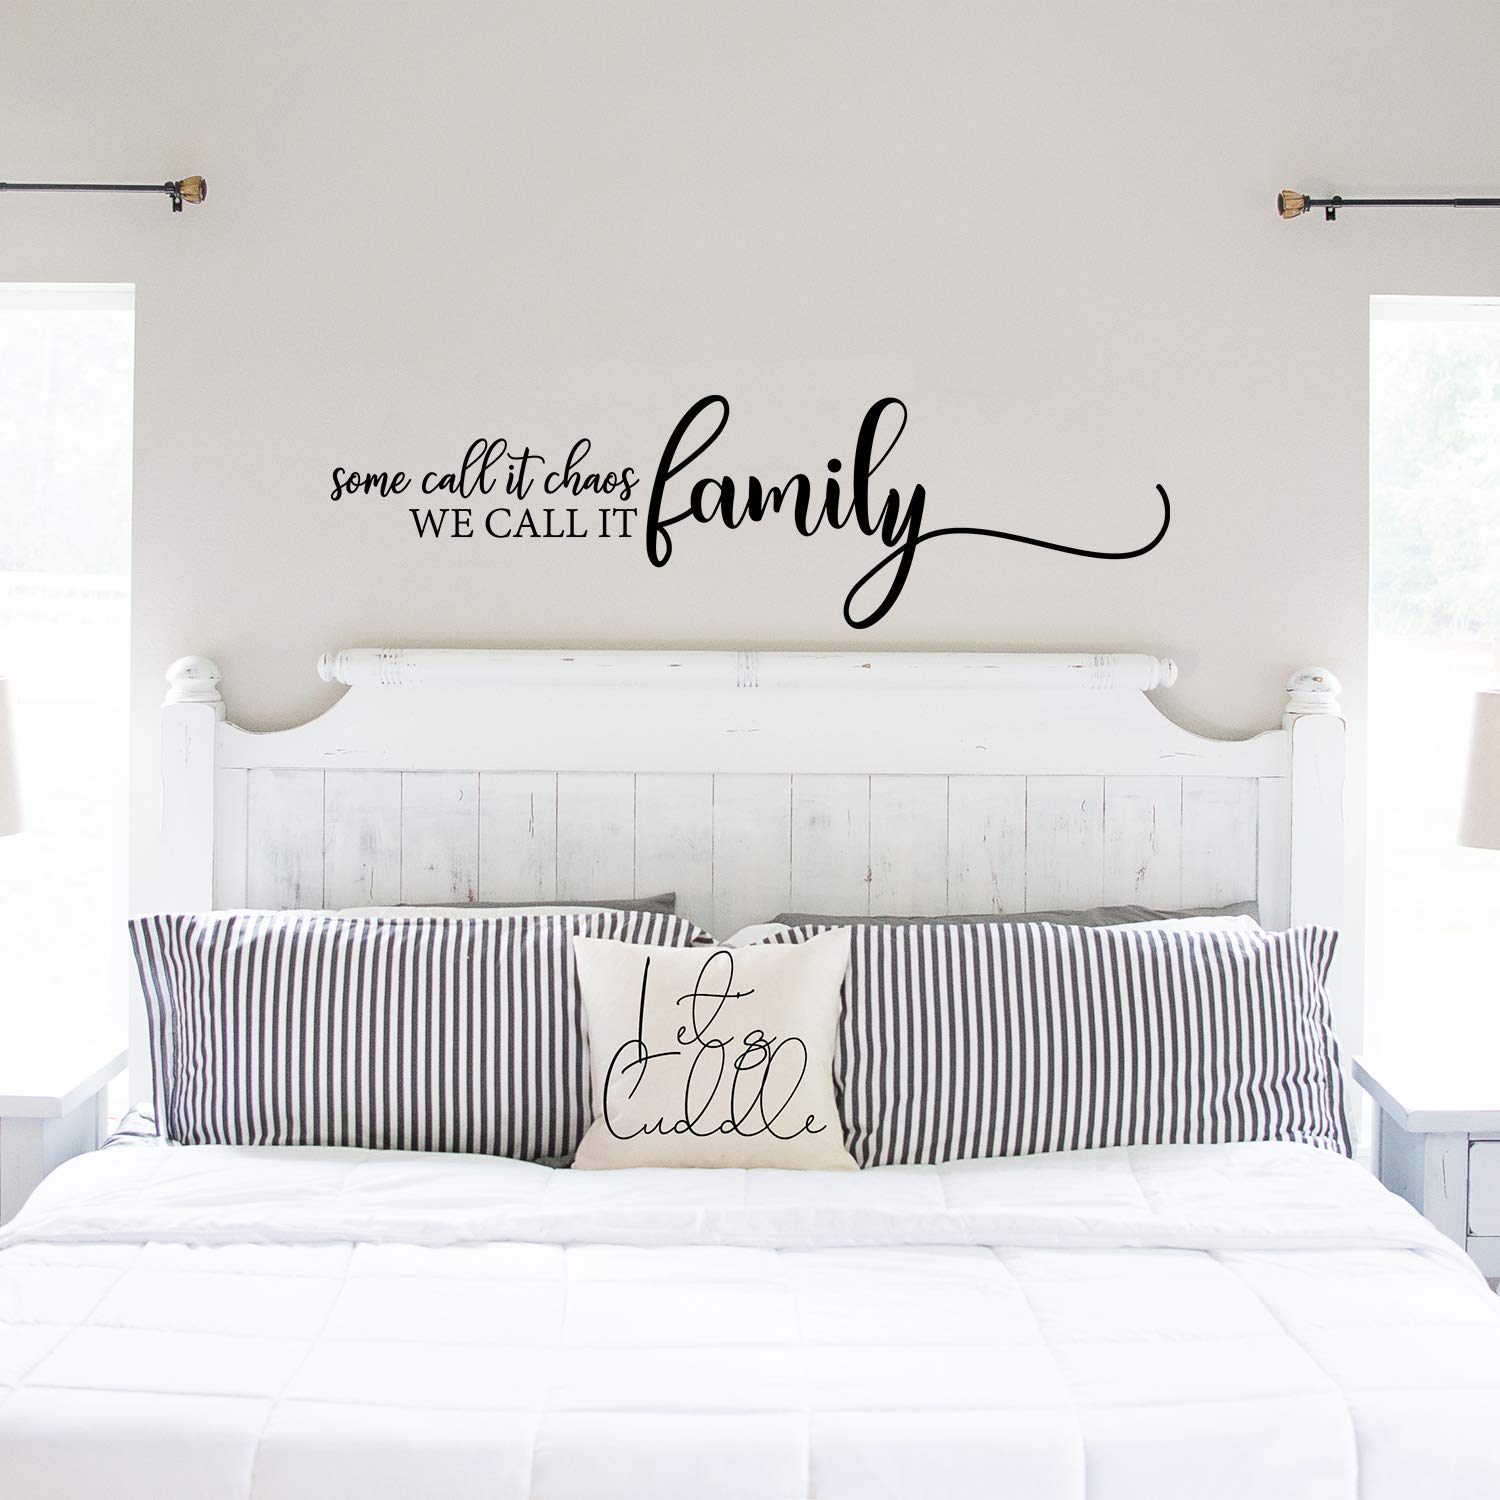 My Vinyl Story - Family Wall Decals for Living Room Decor Family Wall Decor  Wall Stickers Decorations Home Art Bedroom Love Decals Quotes Word (Some ...